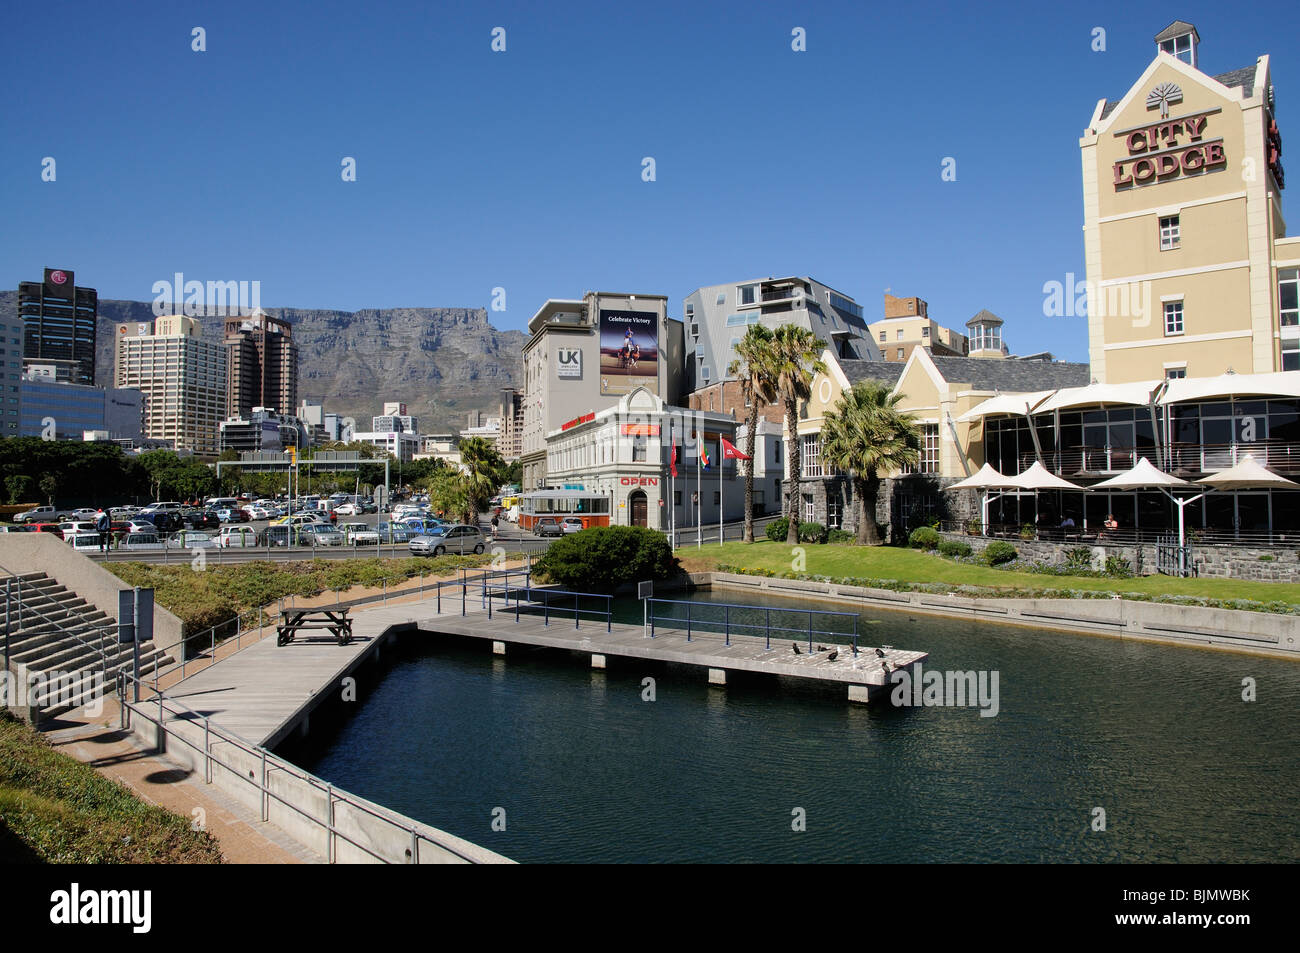 City Lodge Hotel on Dock Road at the gateway of the V&A waterfront development & Table Mountain Cape Town - Stock Image